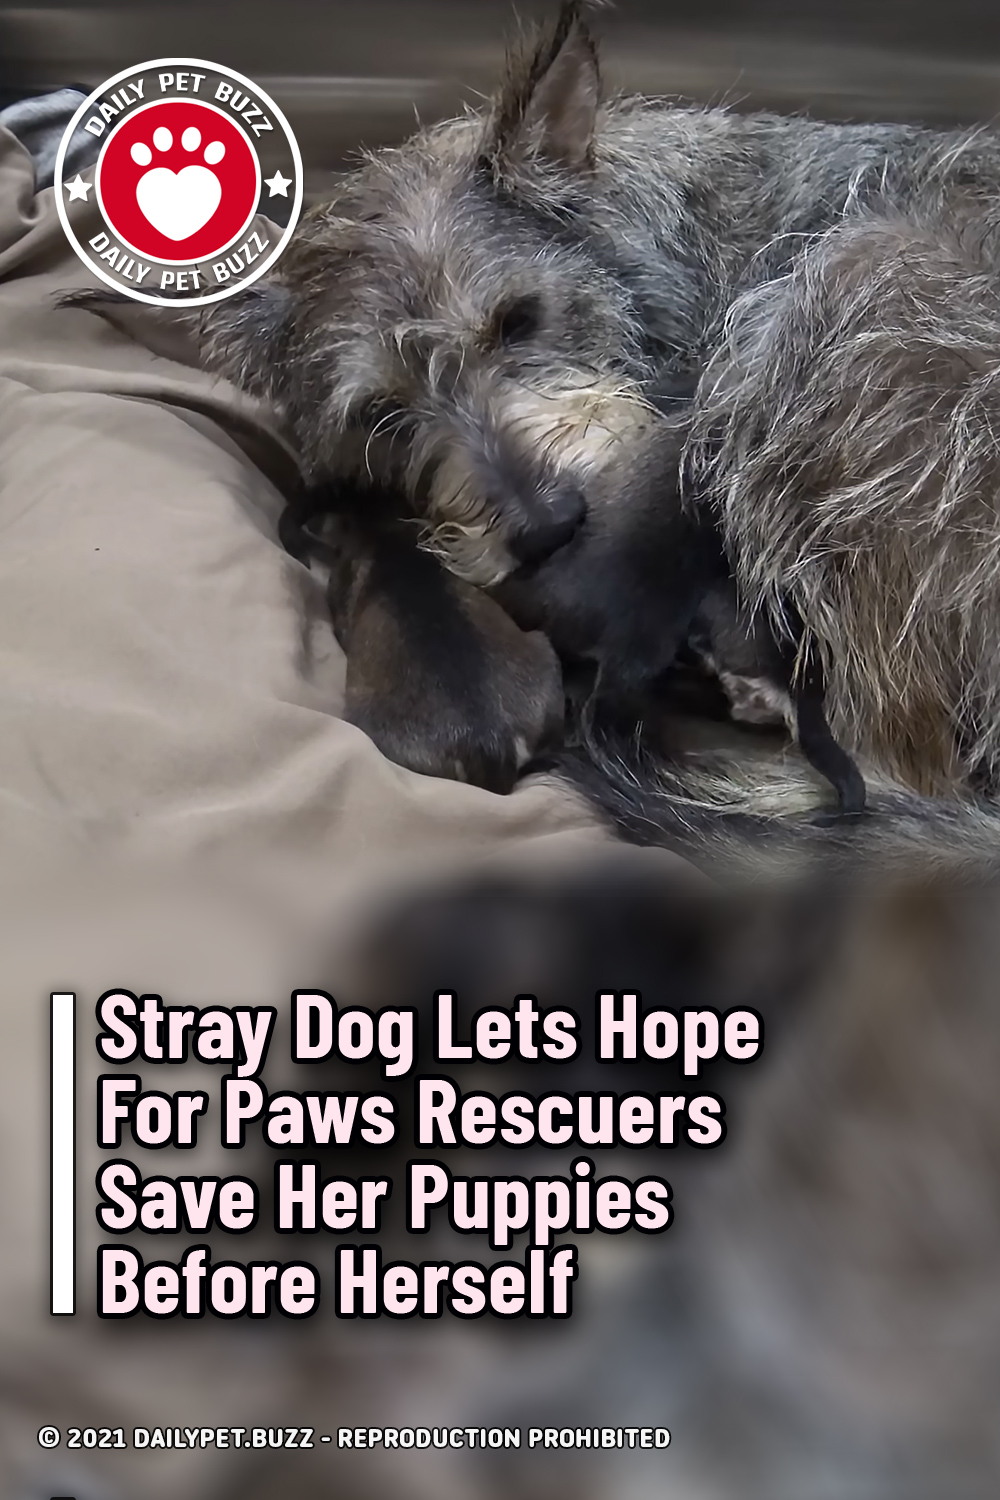 Stray Dog Lets Hope For Paws Rescuers Save Her Puppies Before Herself